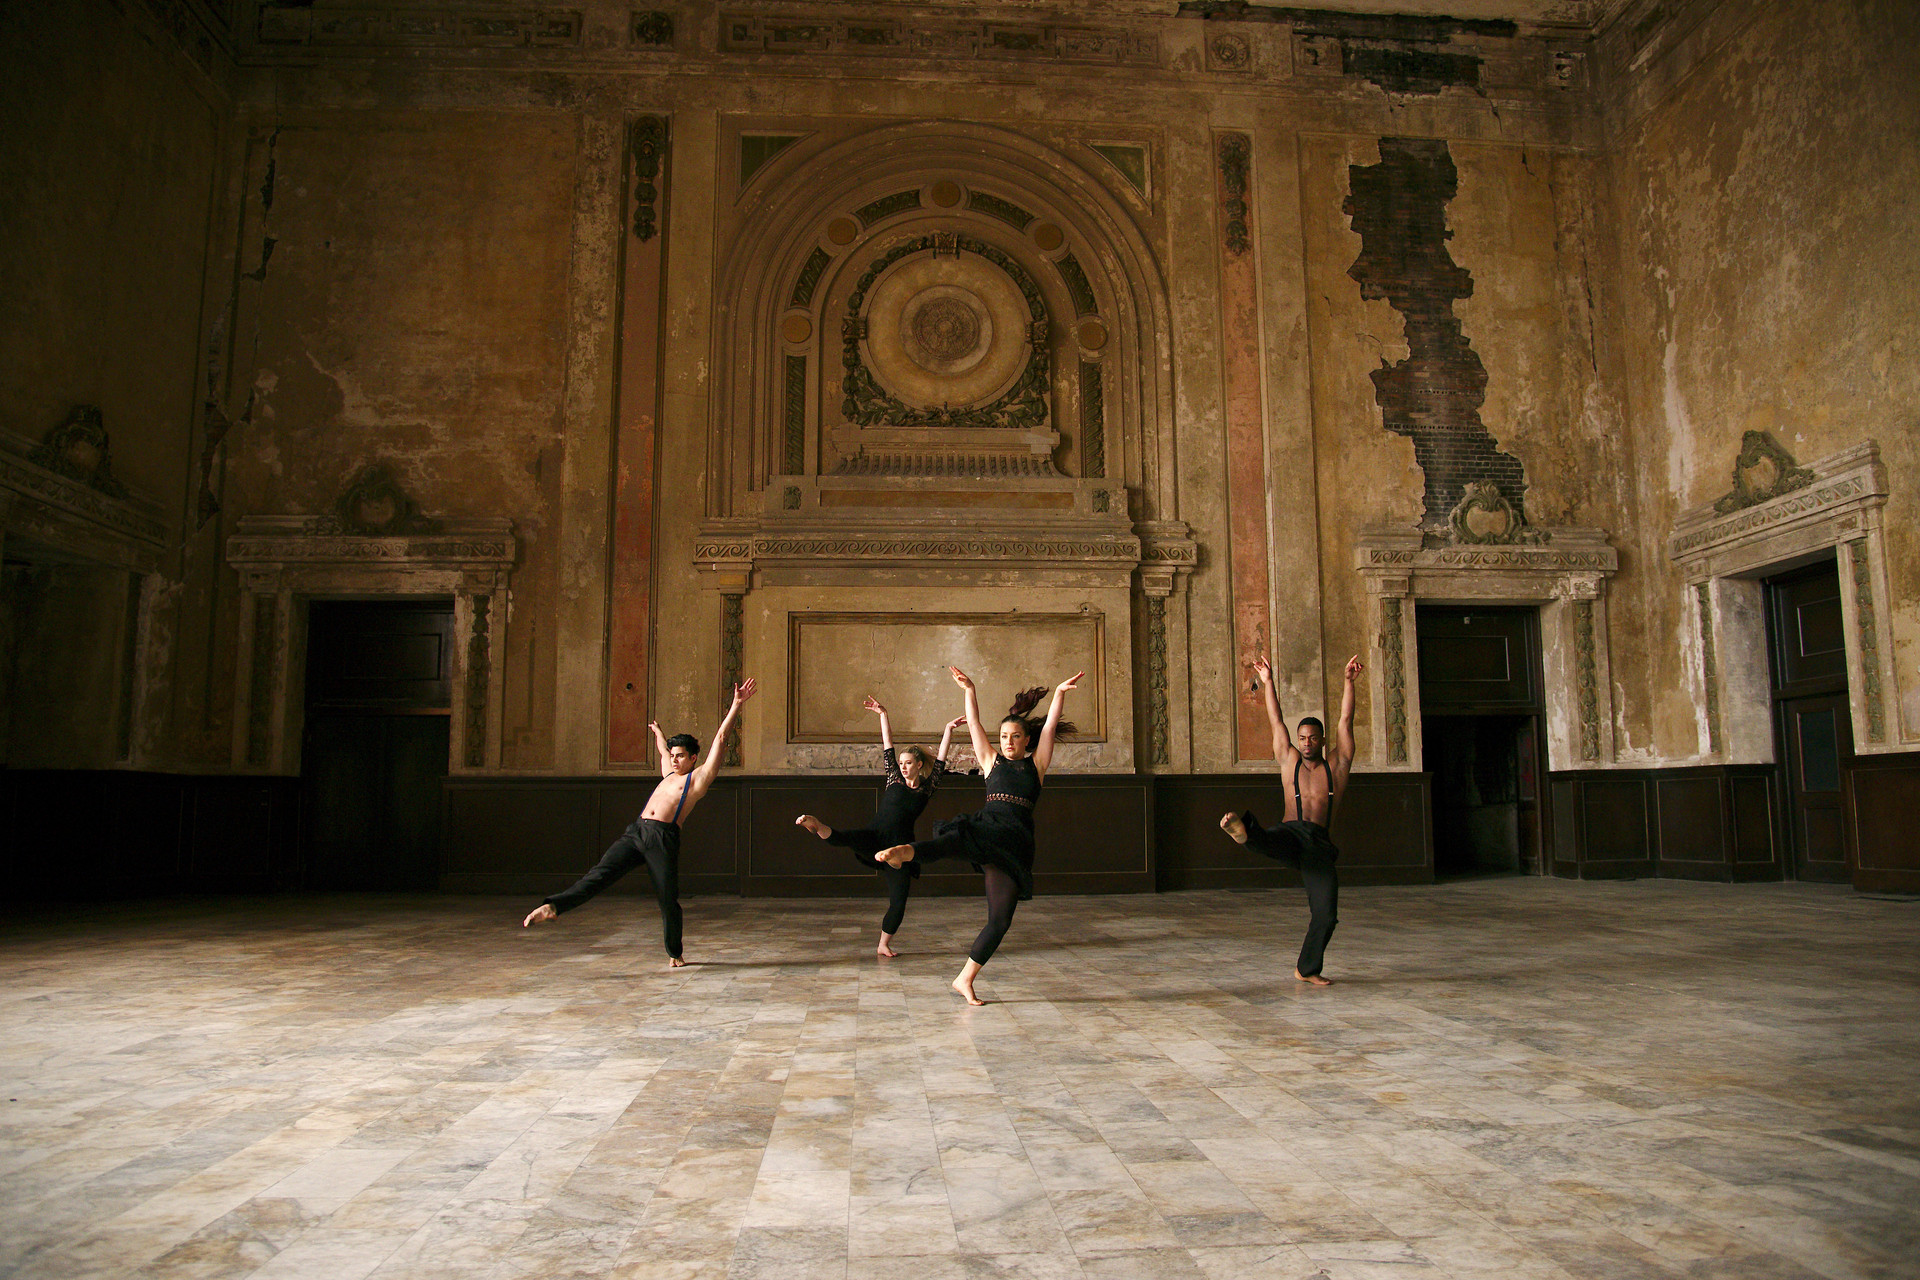 (left to right) Adonis Martin Quiñones, Margot Hodenfield,Fredrika Keefer and Delvis Savigne Friñon of Alayo Dance Company by Andy Mogg